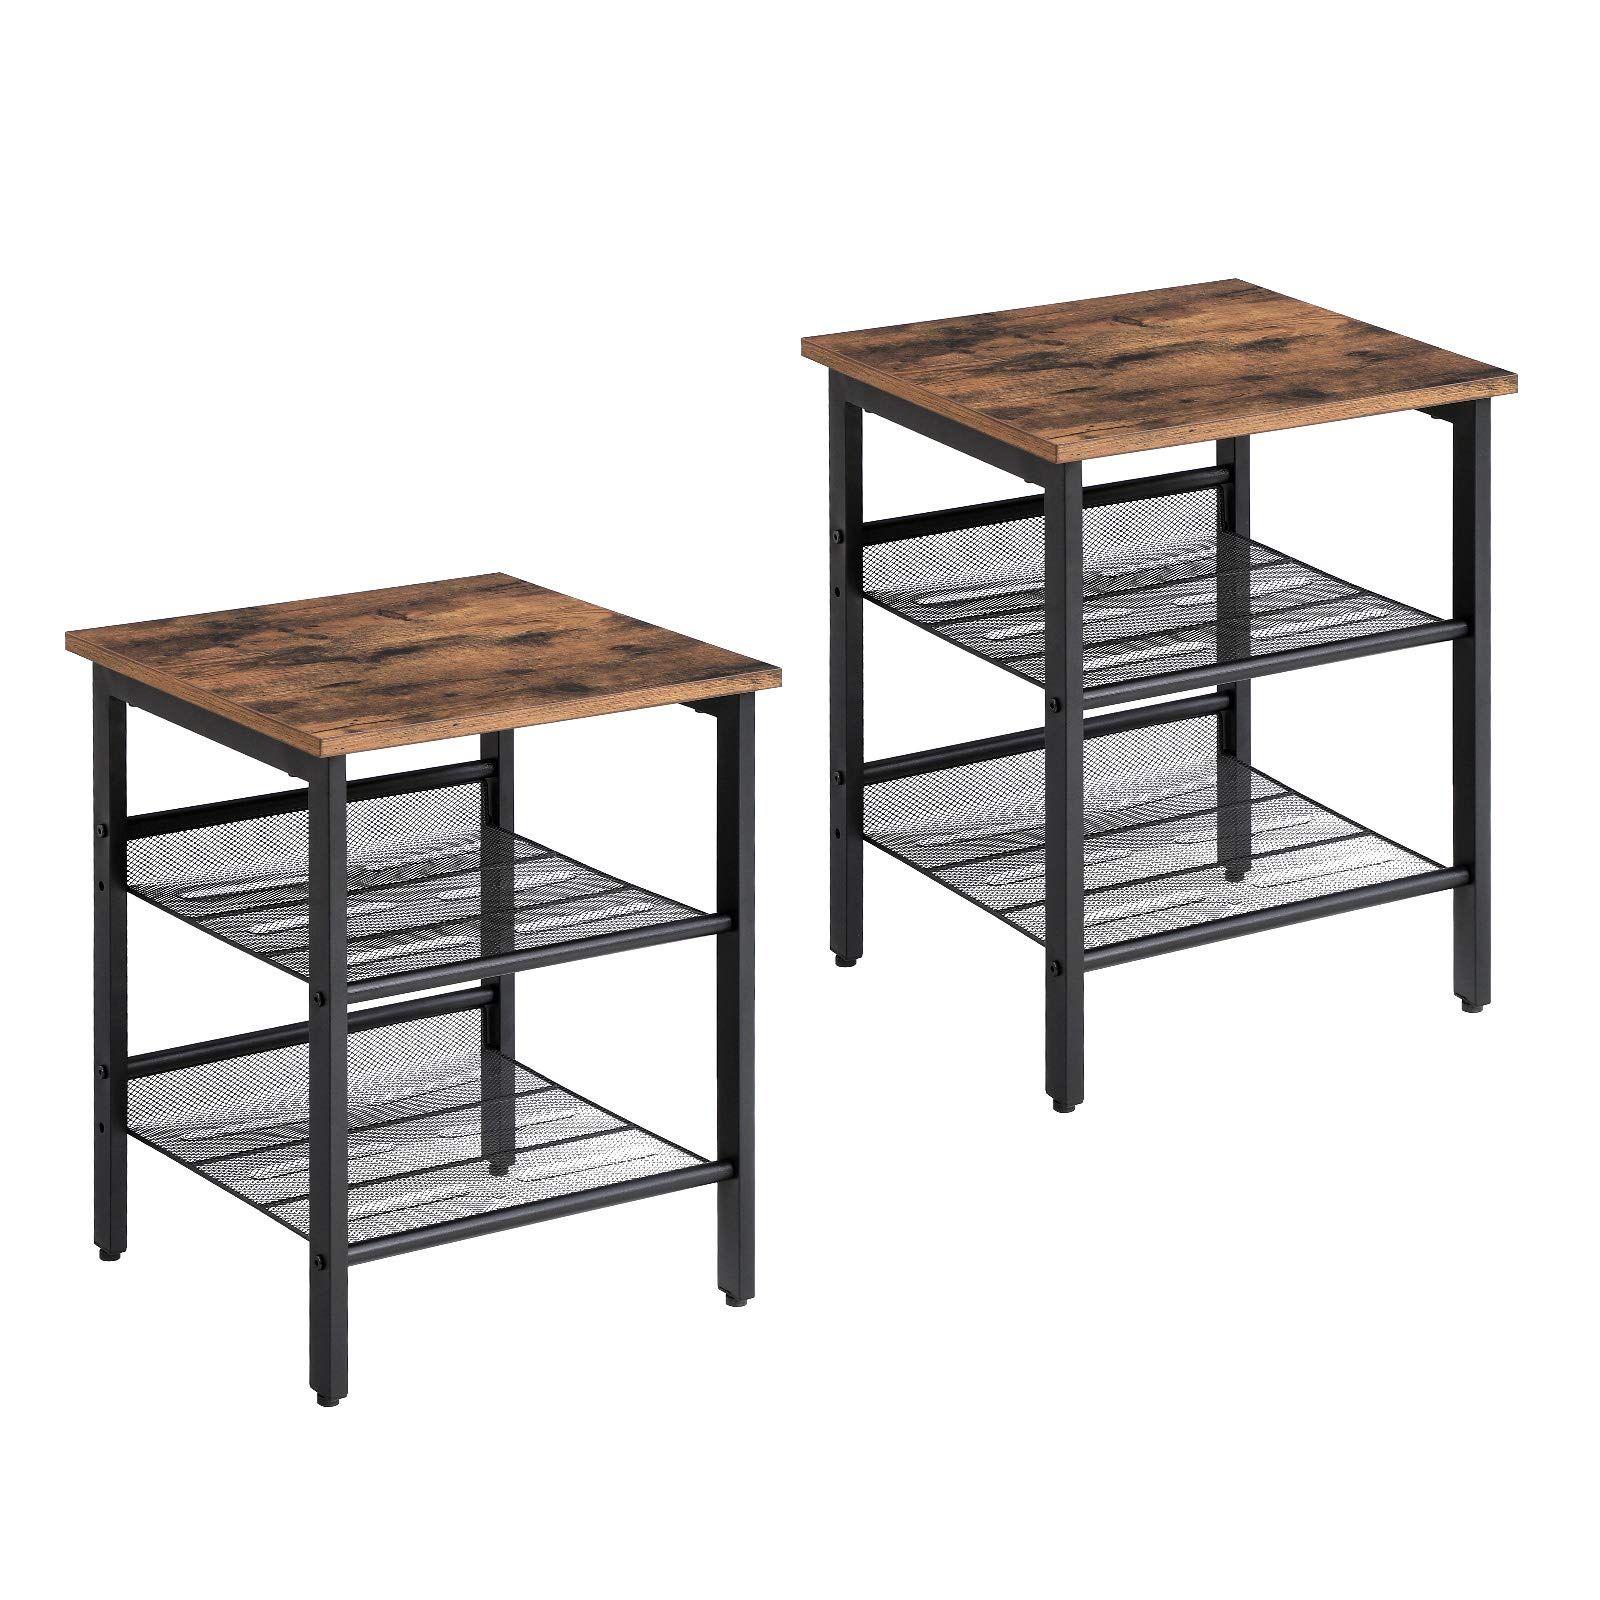 VASAGLE Industrial Nightstand, Set of 2 Side Tables, End Table with Adjustable Mesh Shelves, for Living Room, Bedroom, Stable Metal Frame and Easy Assembly ULET24X by VASAGLE